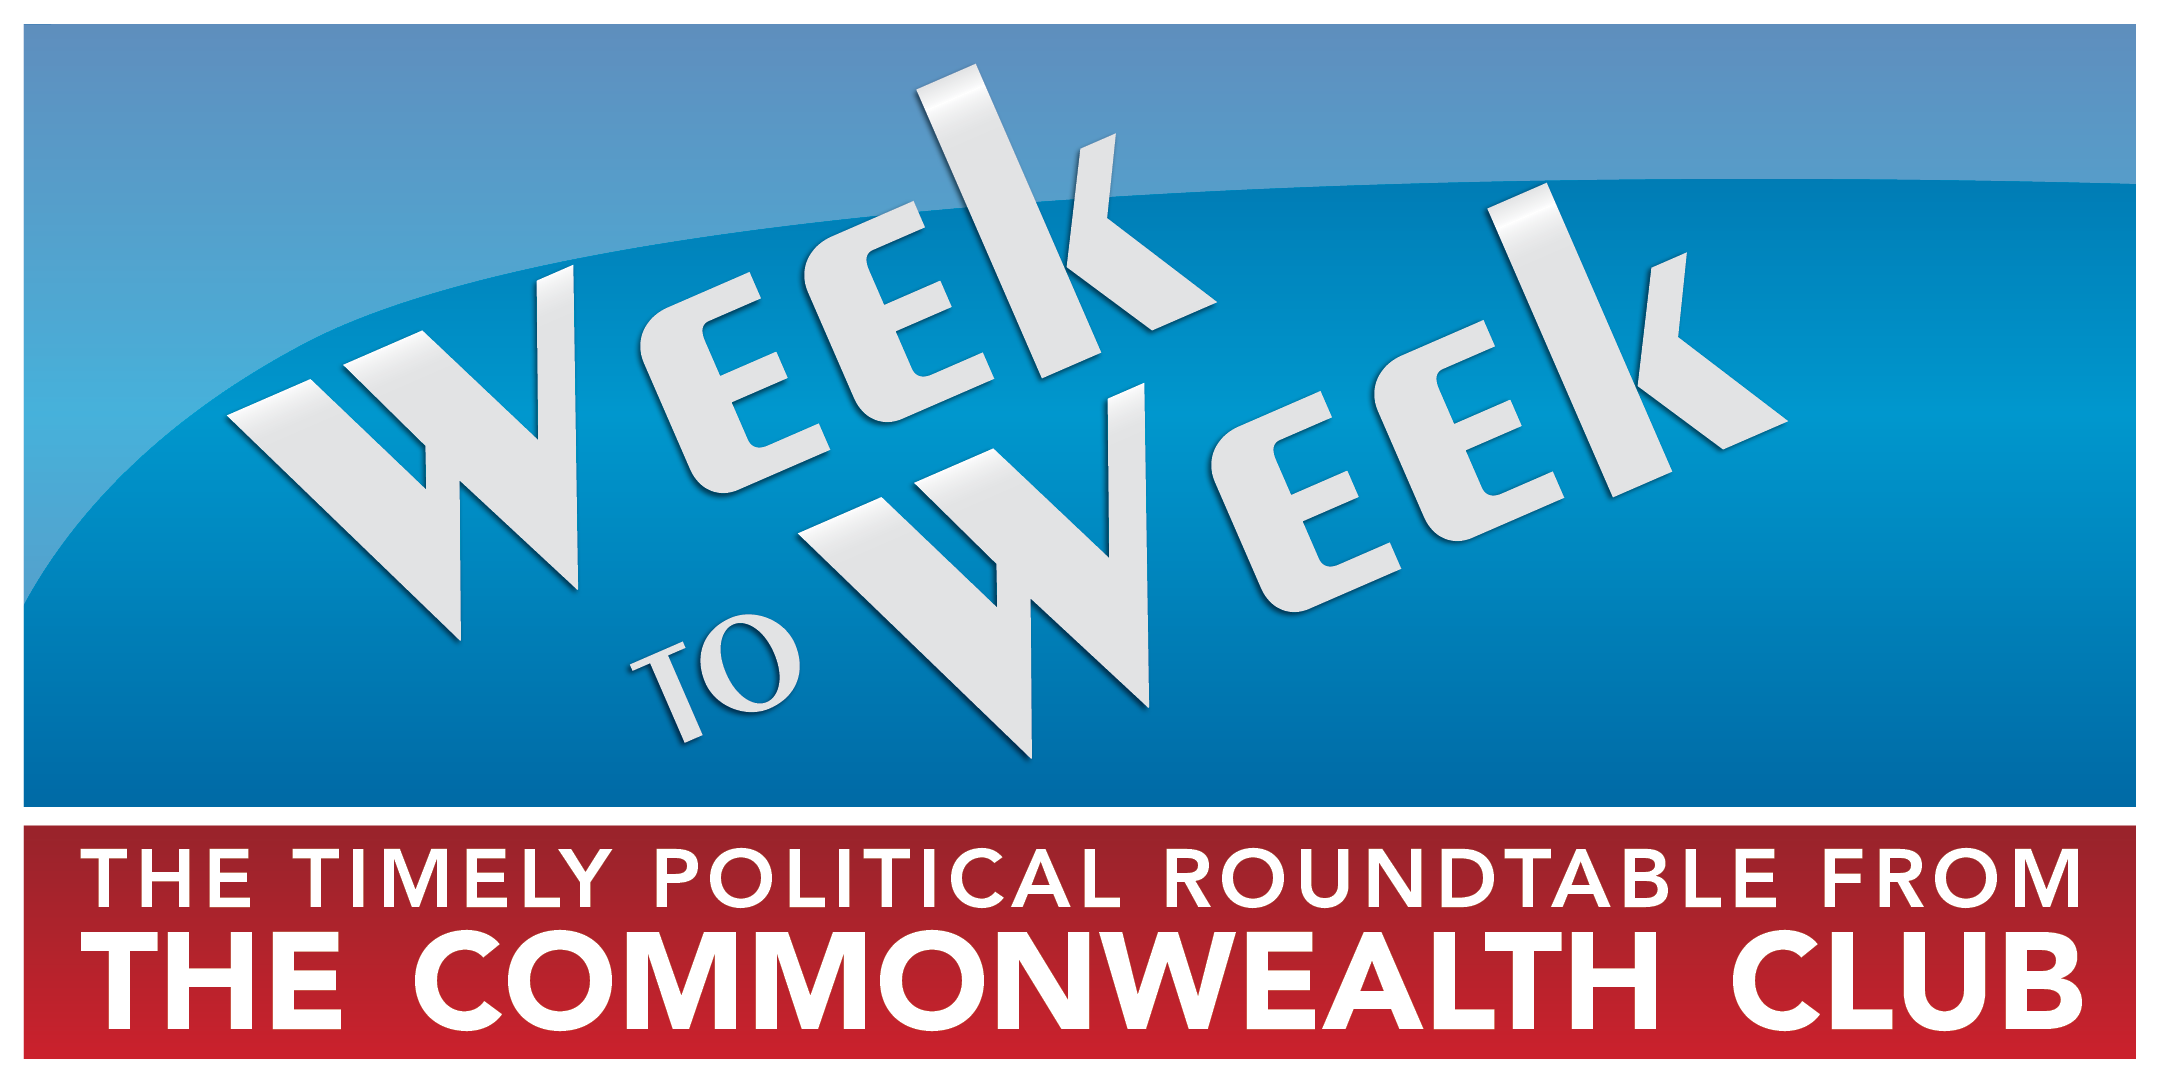 Week to Week Politics Roundtable and Social H